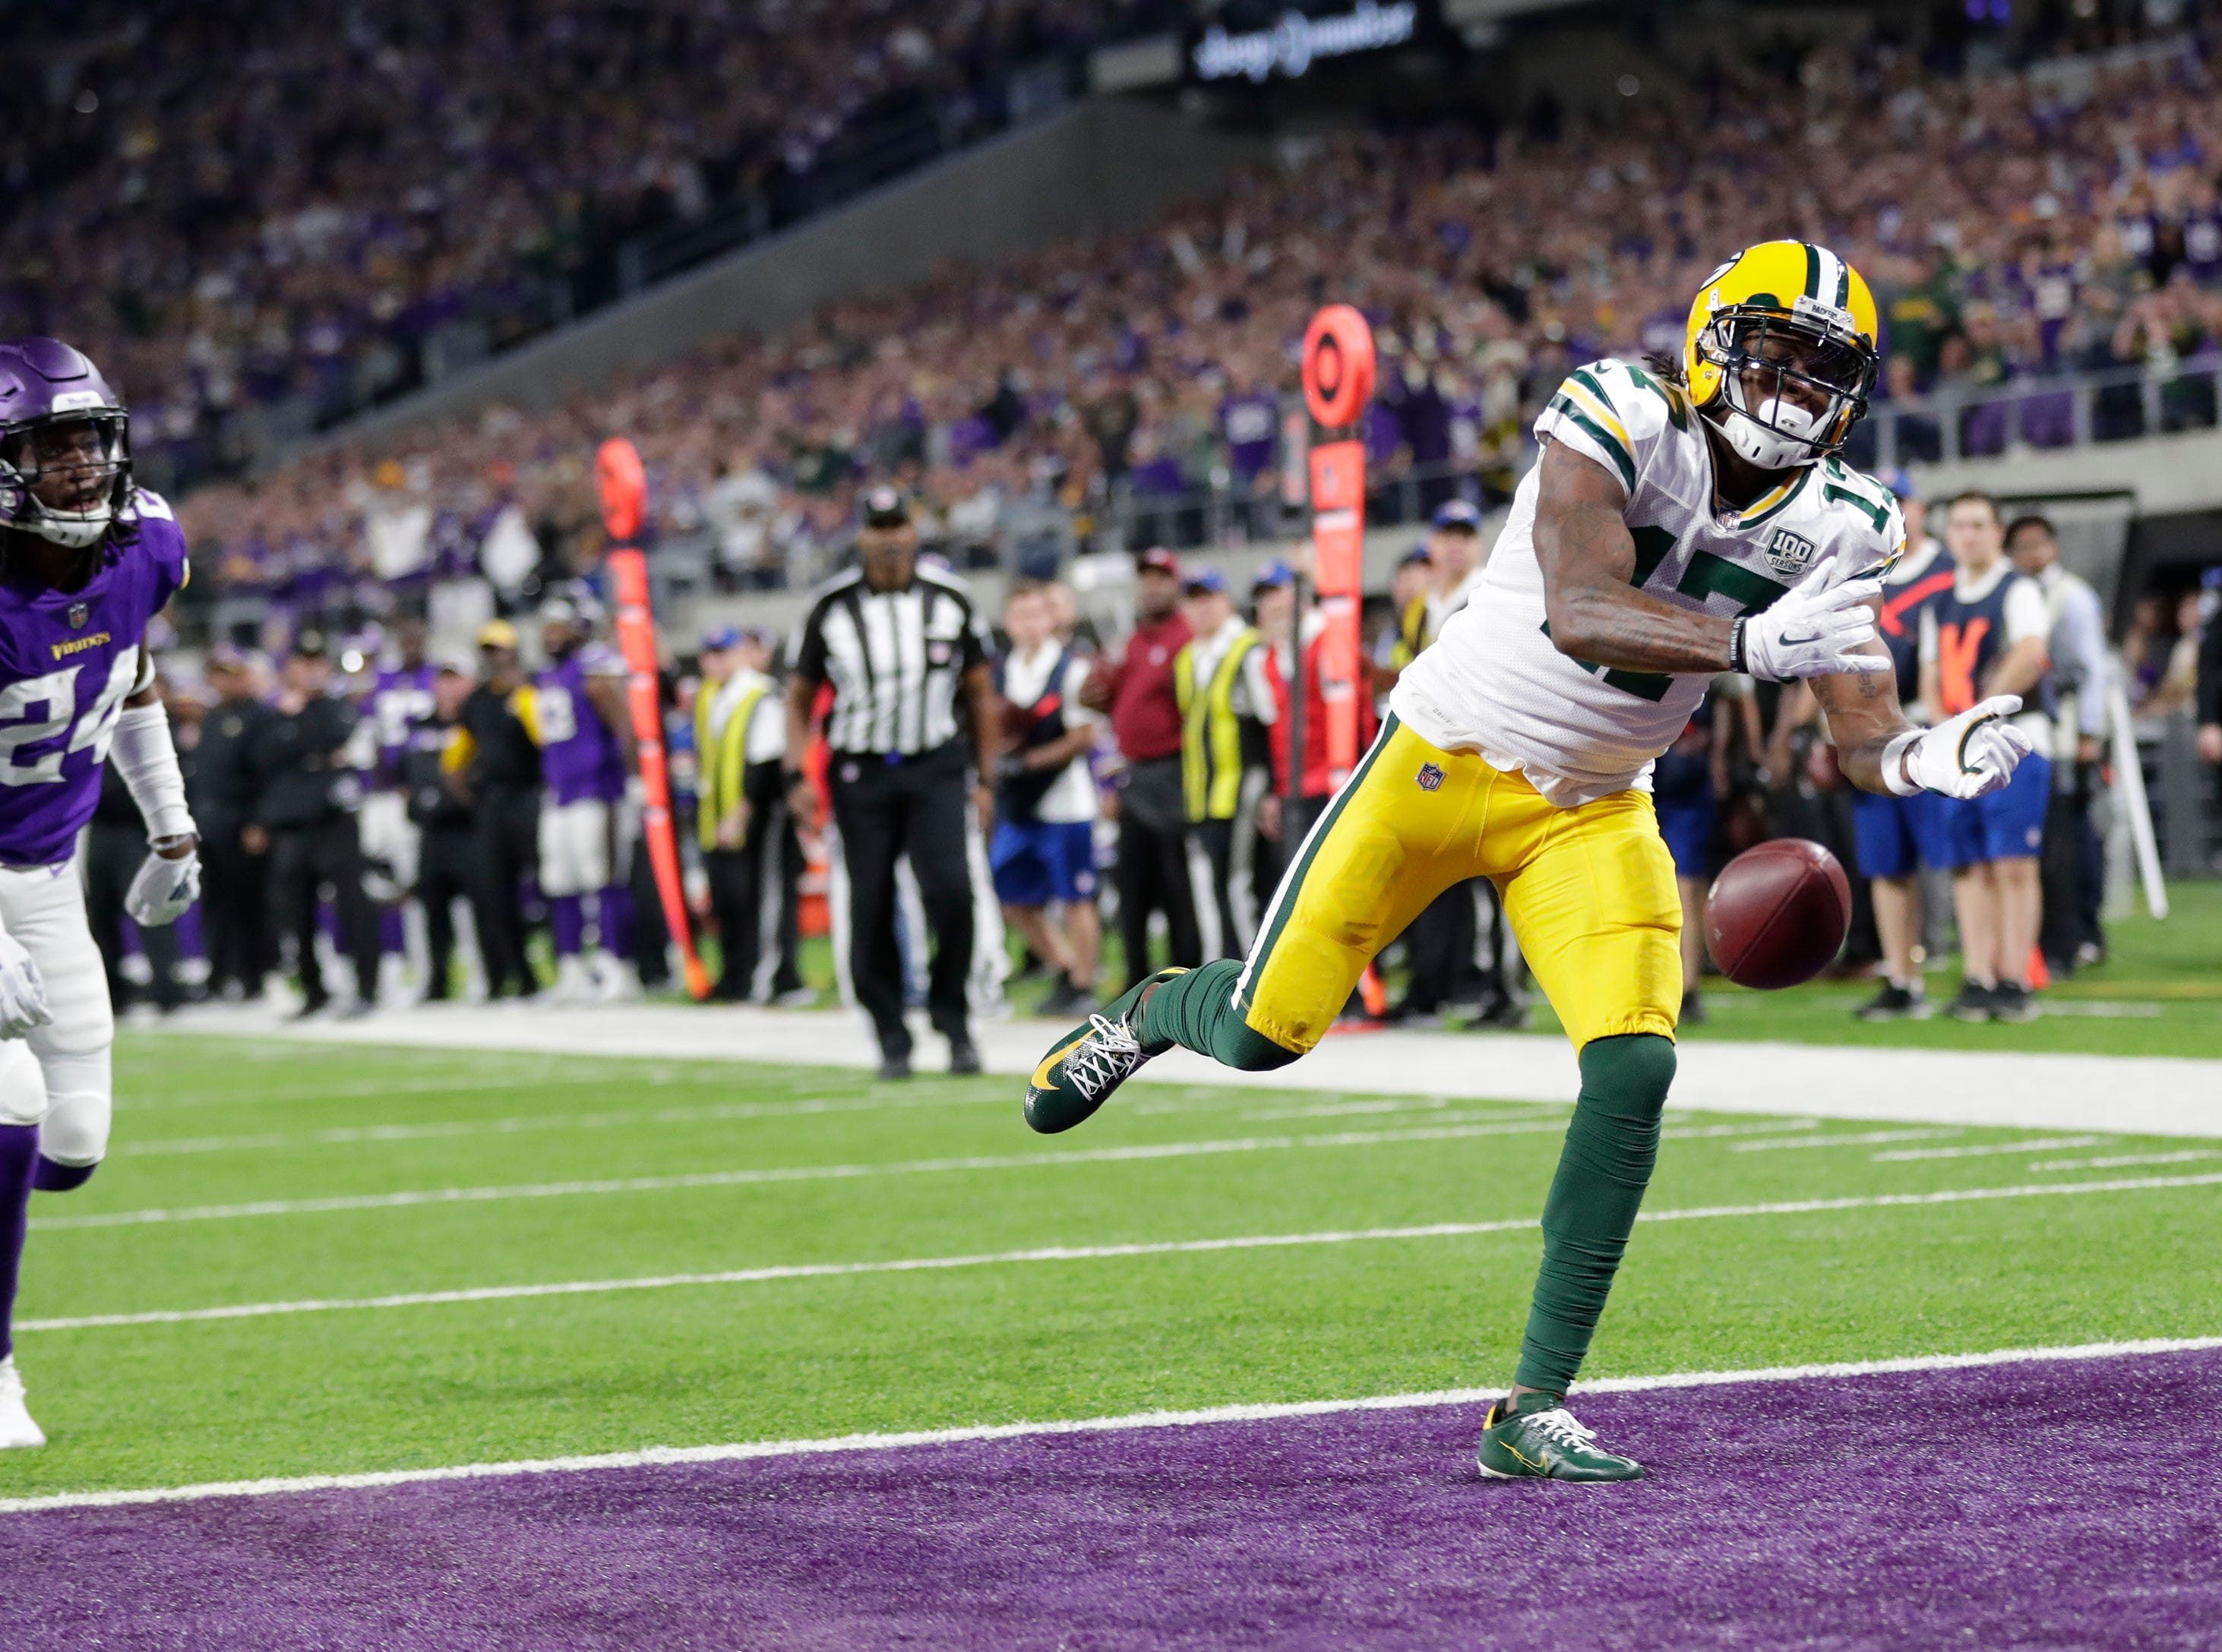 Green Bay Packers wide receiver Davante Adams (17) can't come up with a catch in the end zone against Minnesota Vikings defensive back Holton Hill (24) late in the fourth quarter during their football game Sunday, November 25, 2018, at U.S. Bank Stadium in Minneapolis, Minn. 